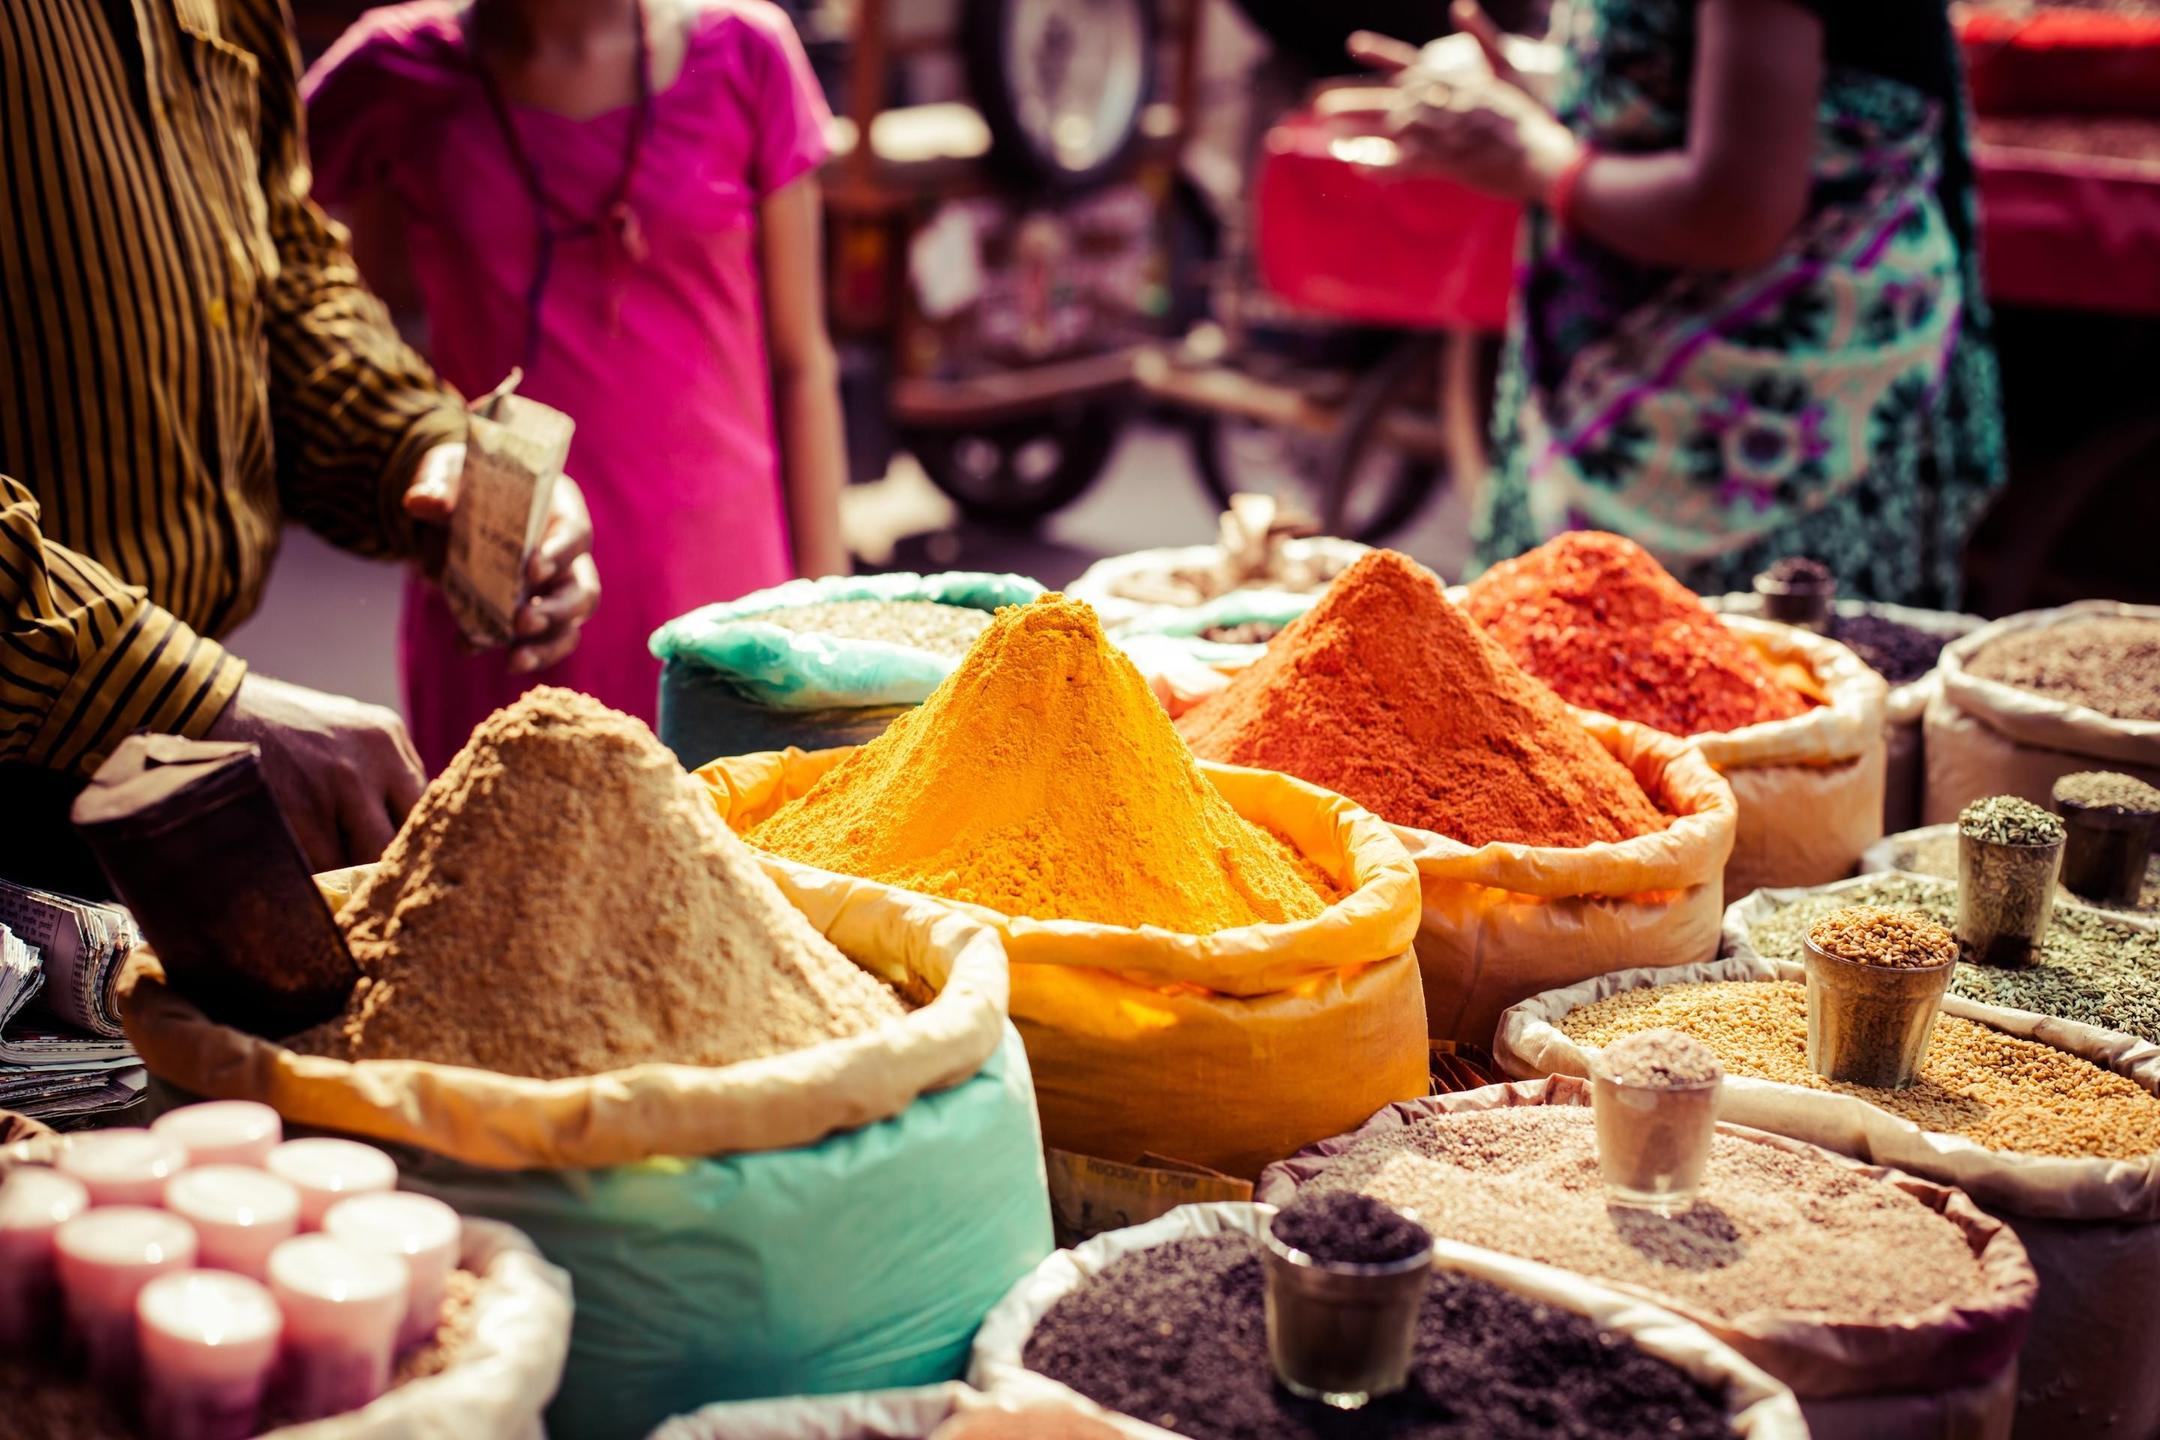 Vegan Indian Spices in large bags at a market